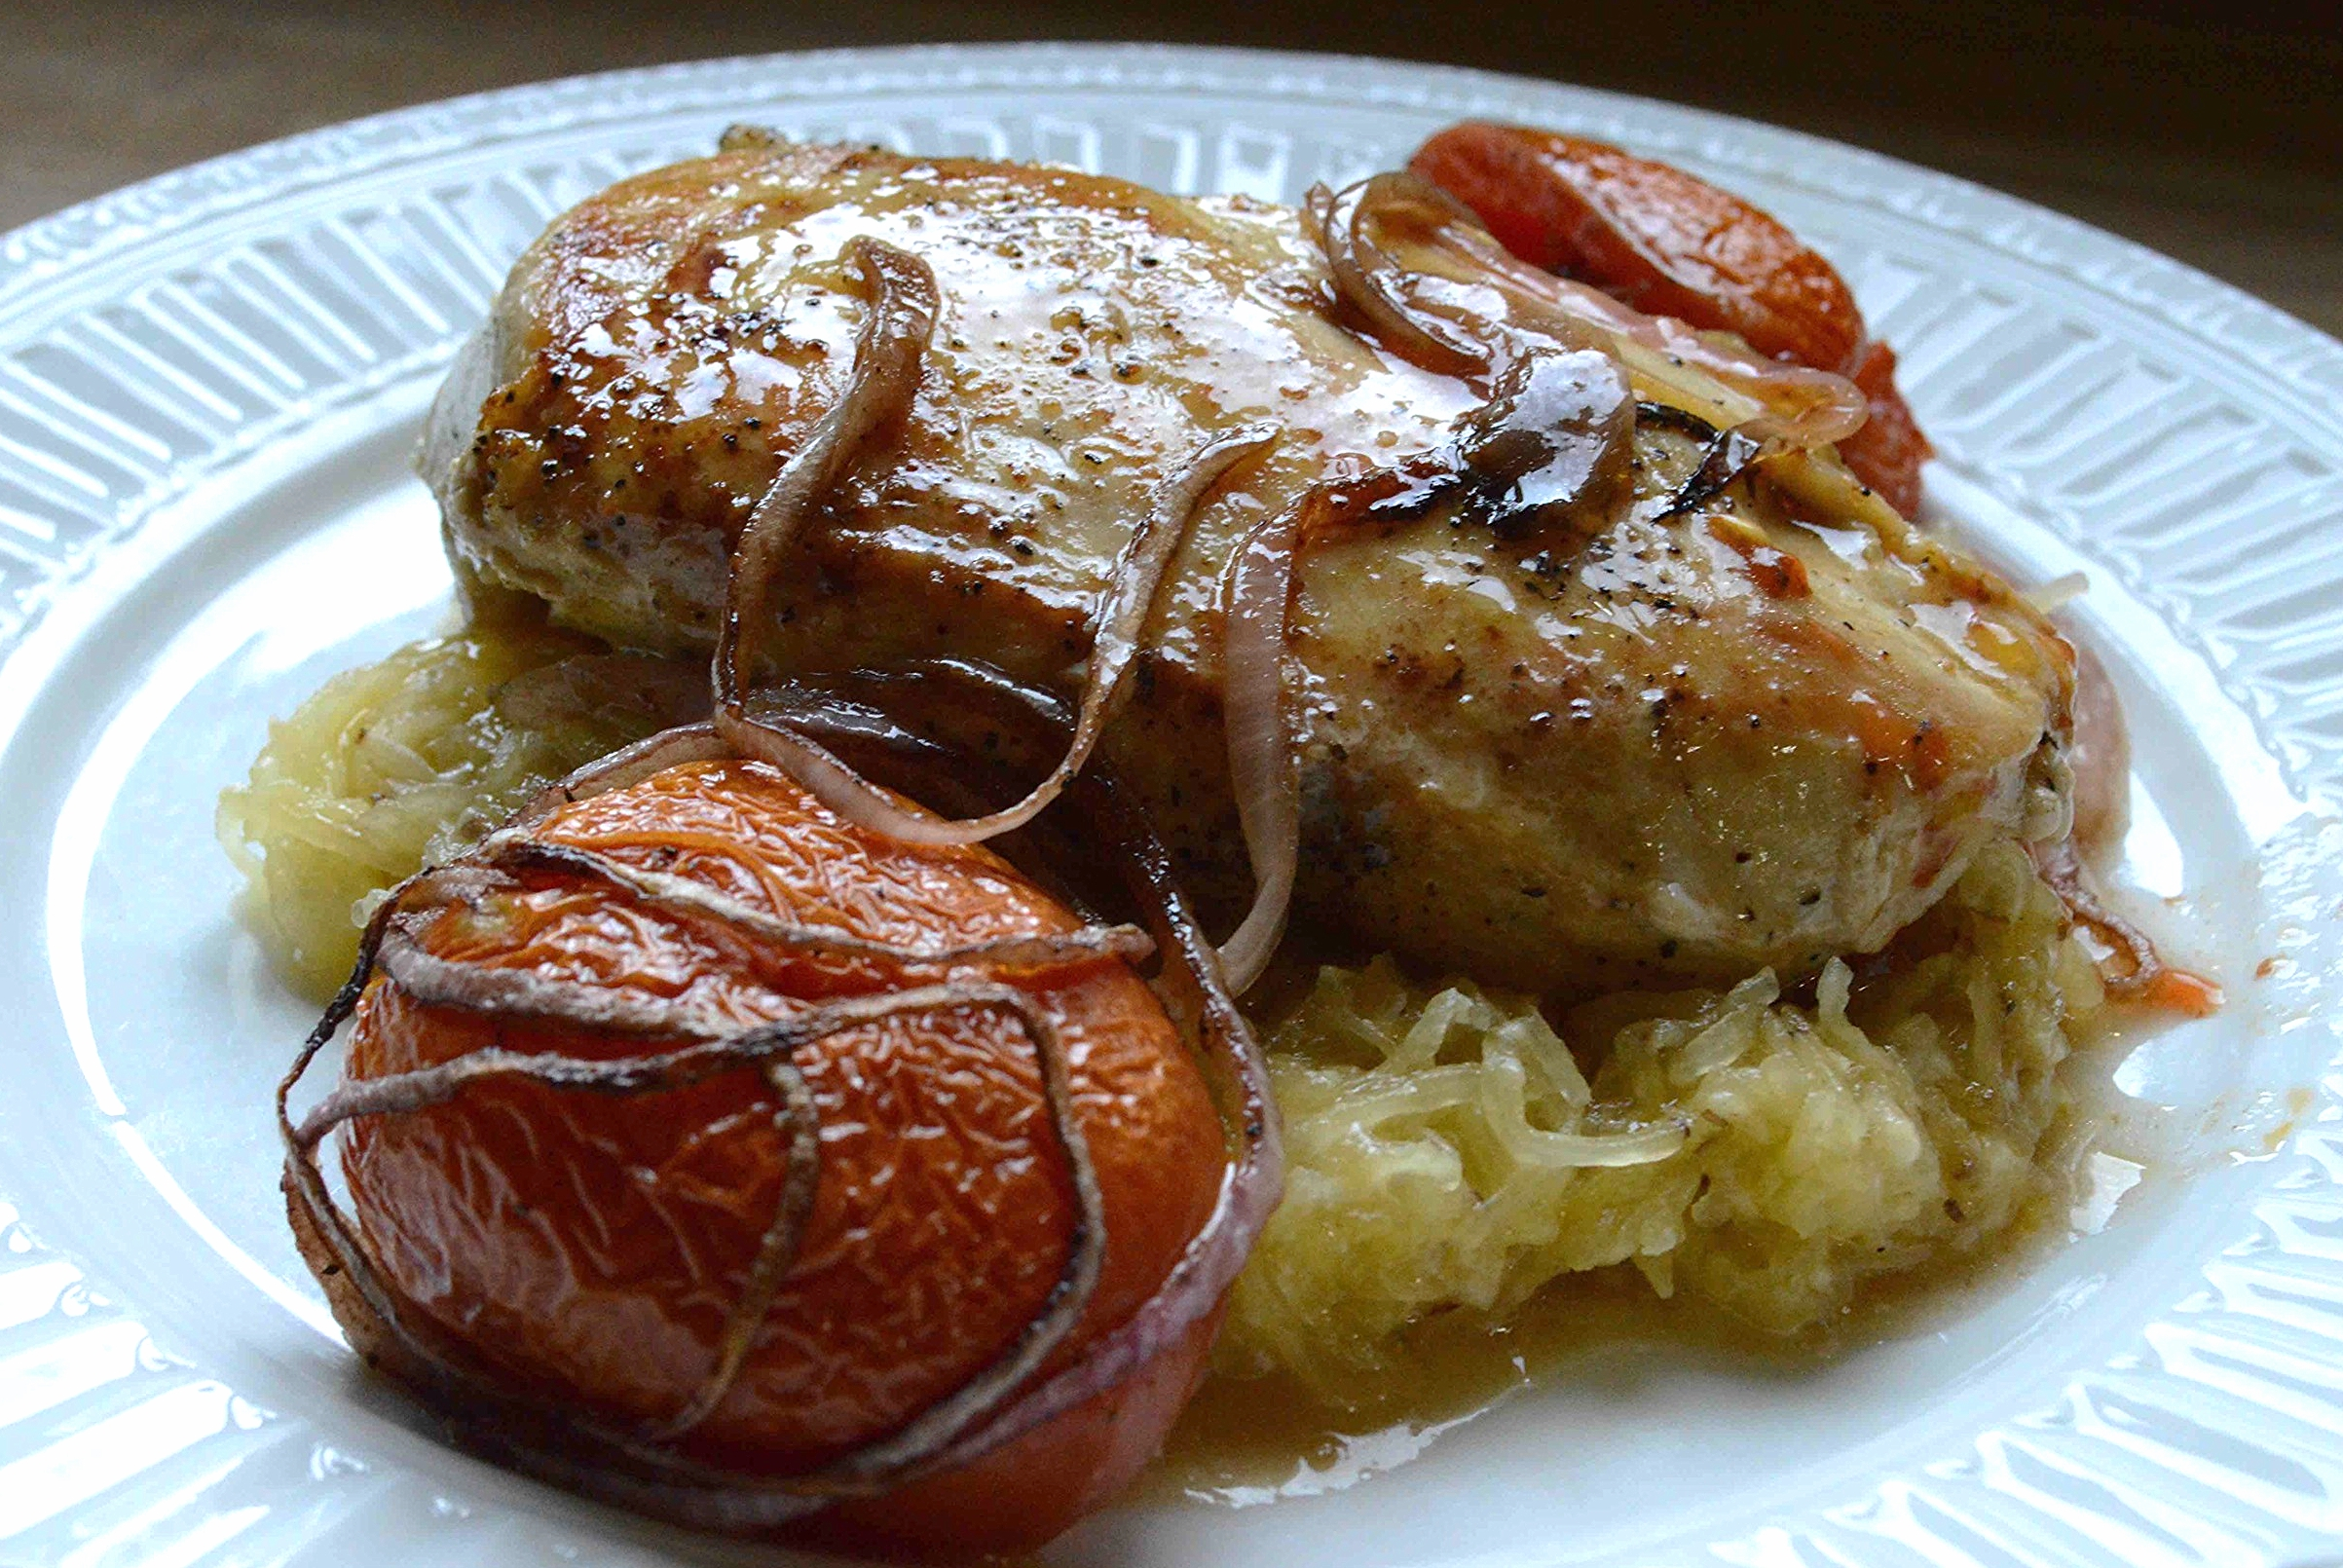 Pan Roasted Chicken with Baked Spaghetti Squash and Roasted Tomatoes